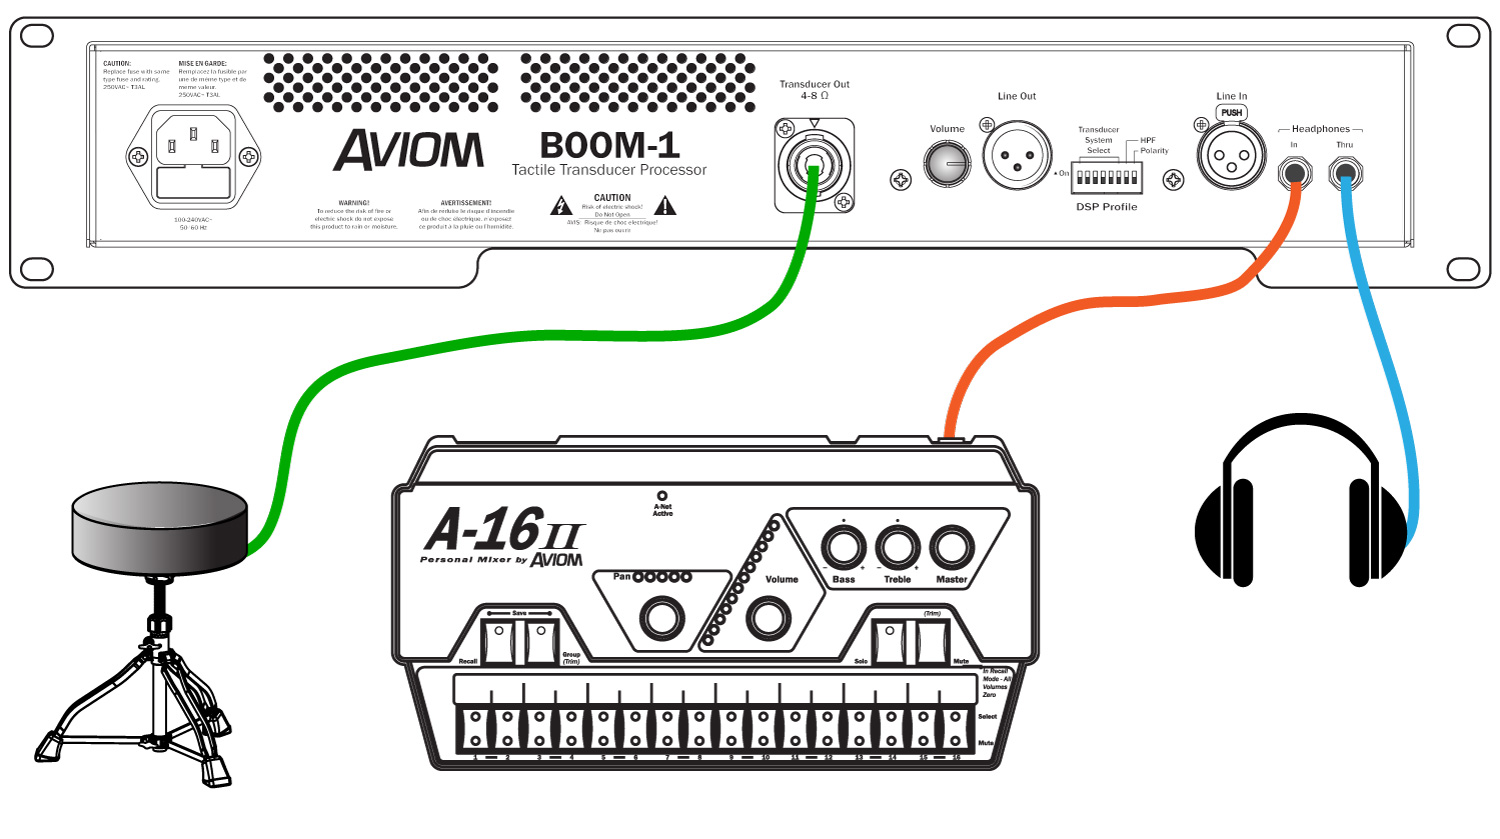 [WRG-0526] P 32 Triducer Vdo Wiring Diagram